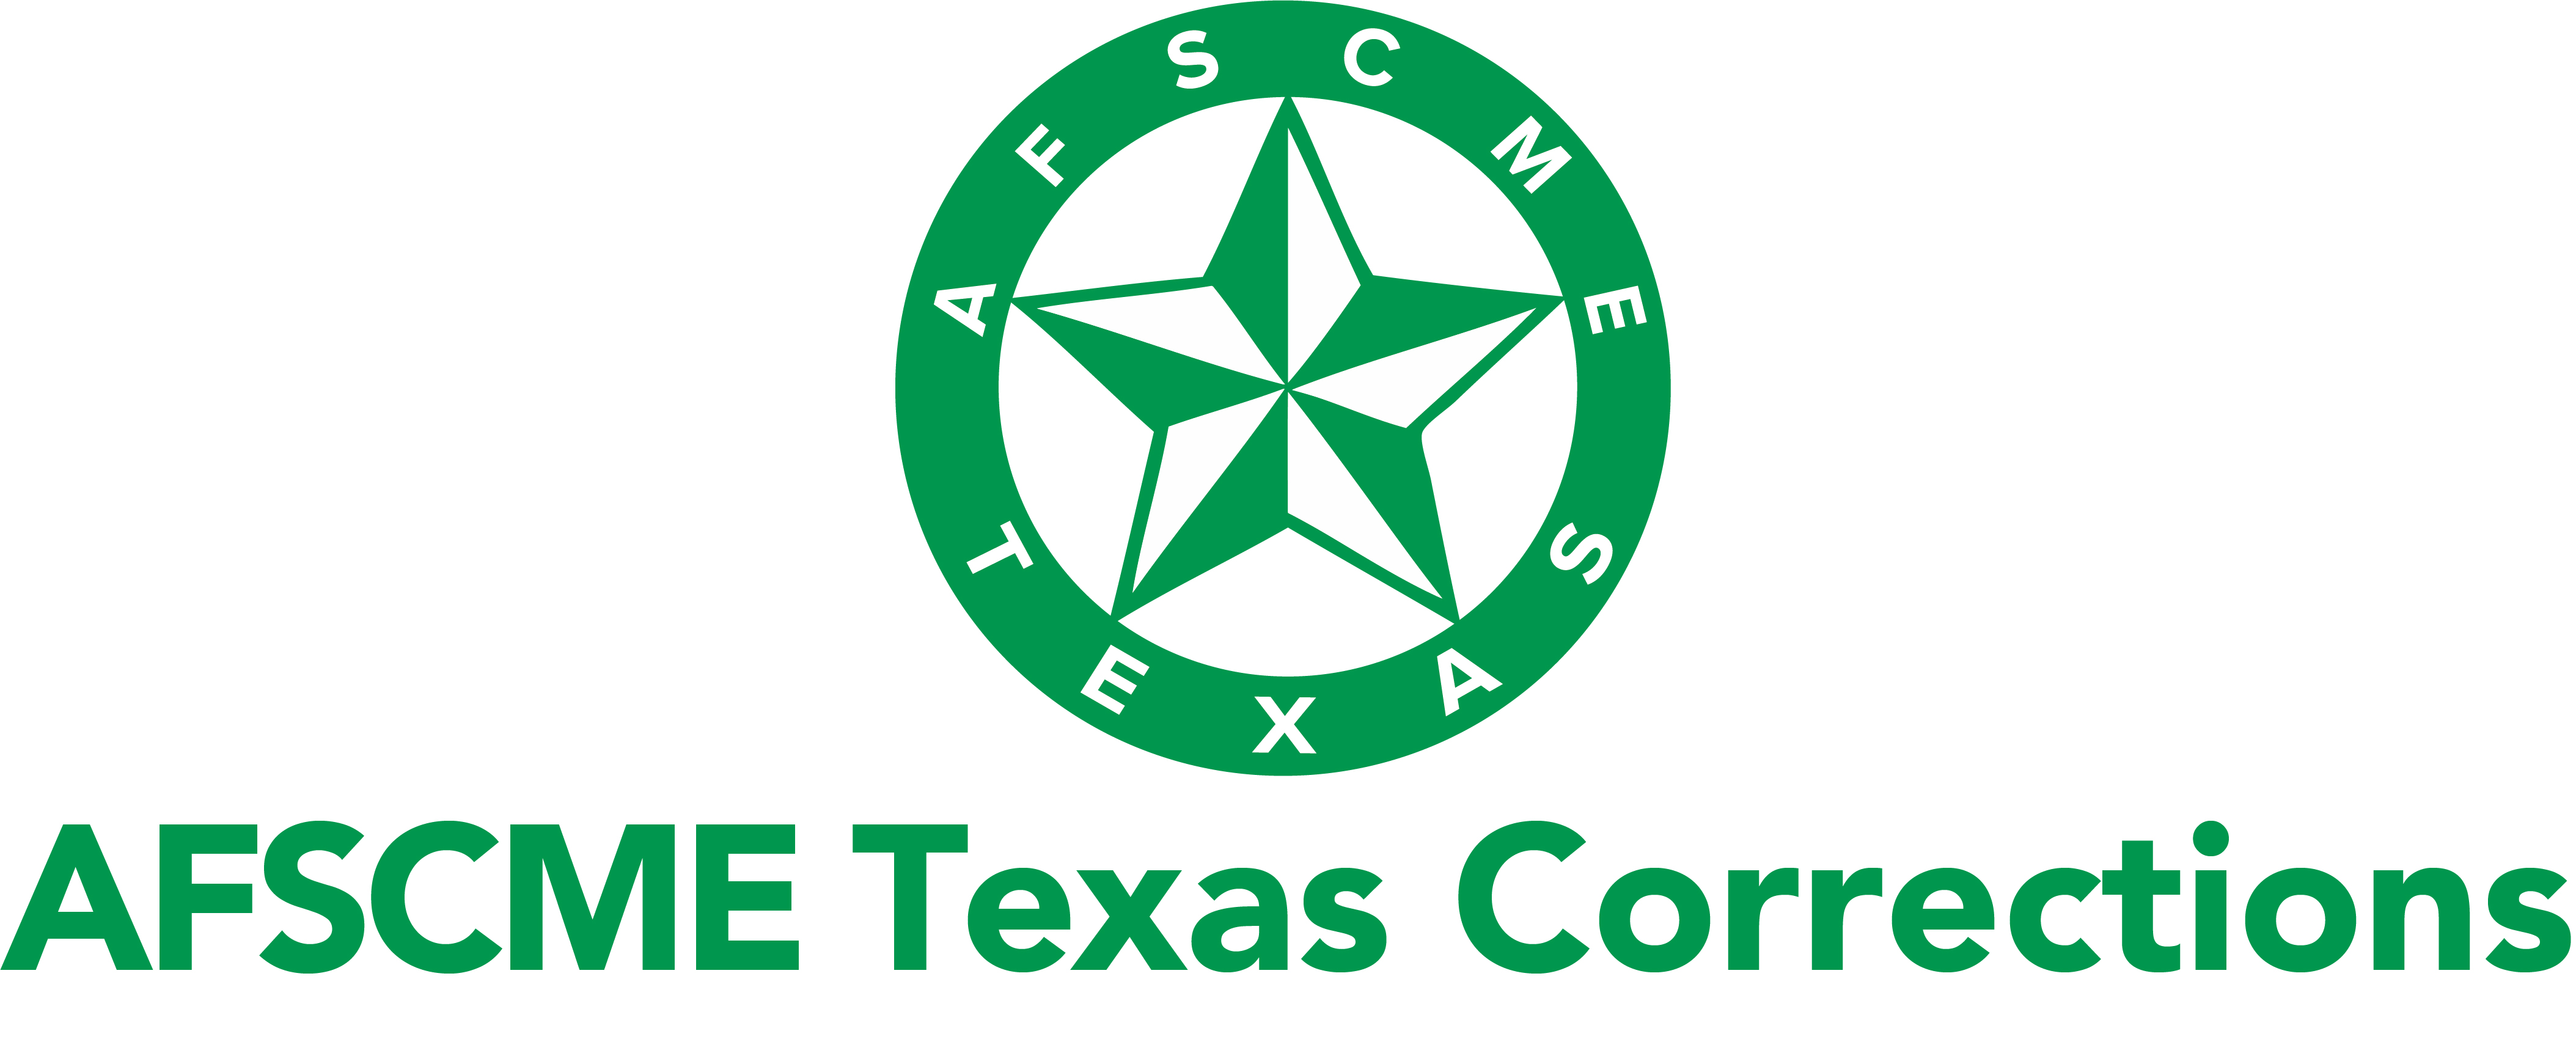 AFSCME Texas Corrections Organizing Council